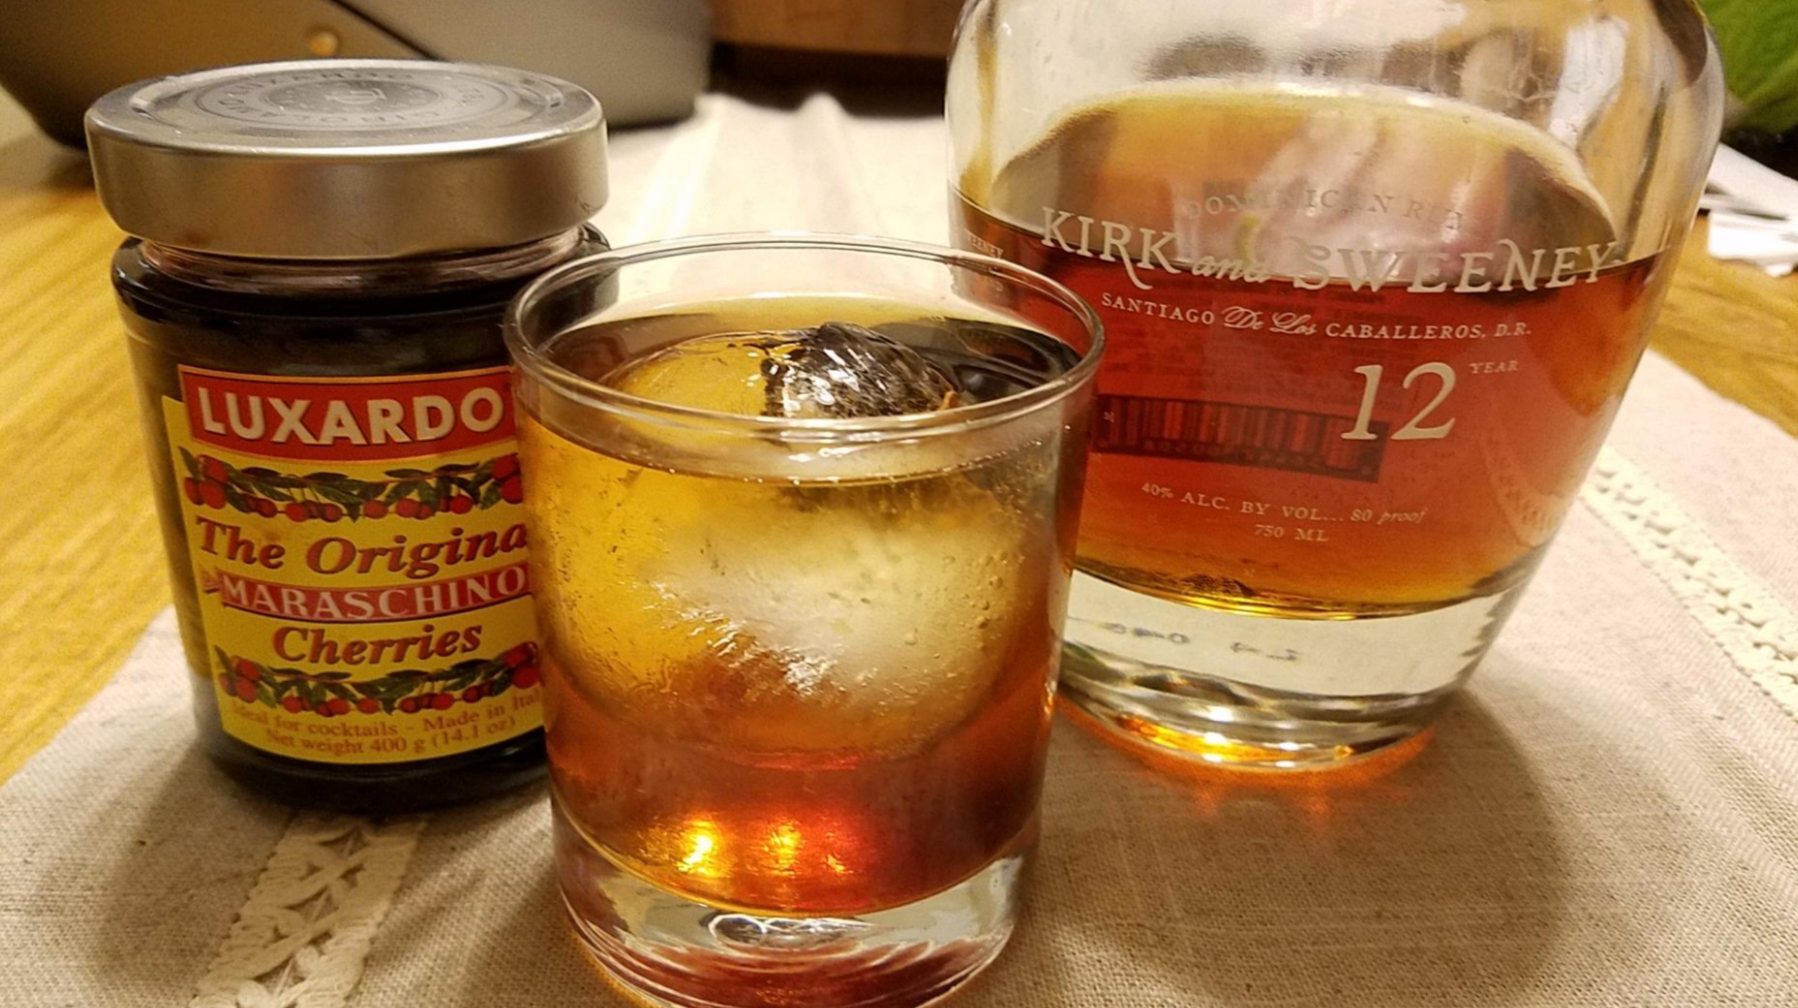 reviewer photo of the jar of cherries, a bottle of alcohol, and an old fashioned with a maraschino cherry in it